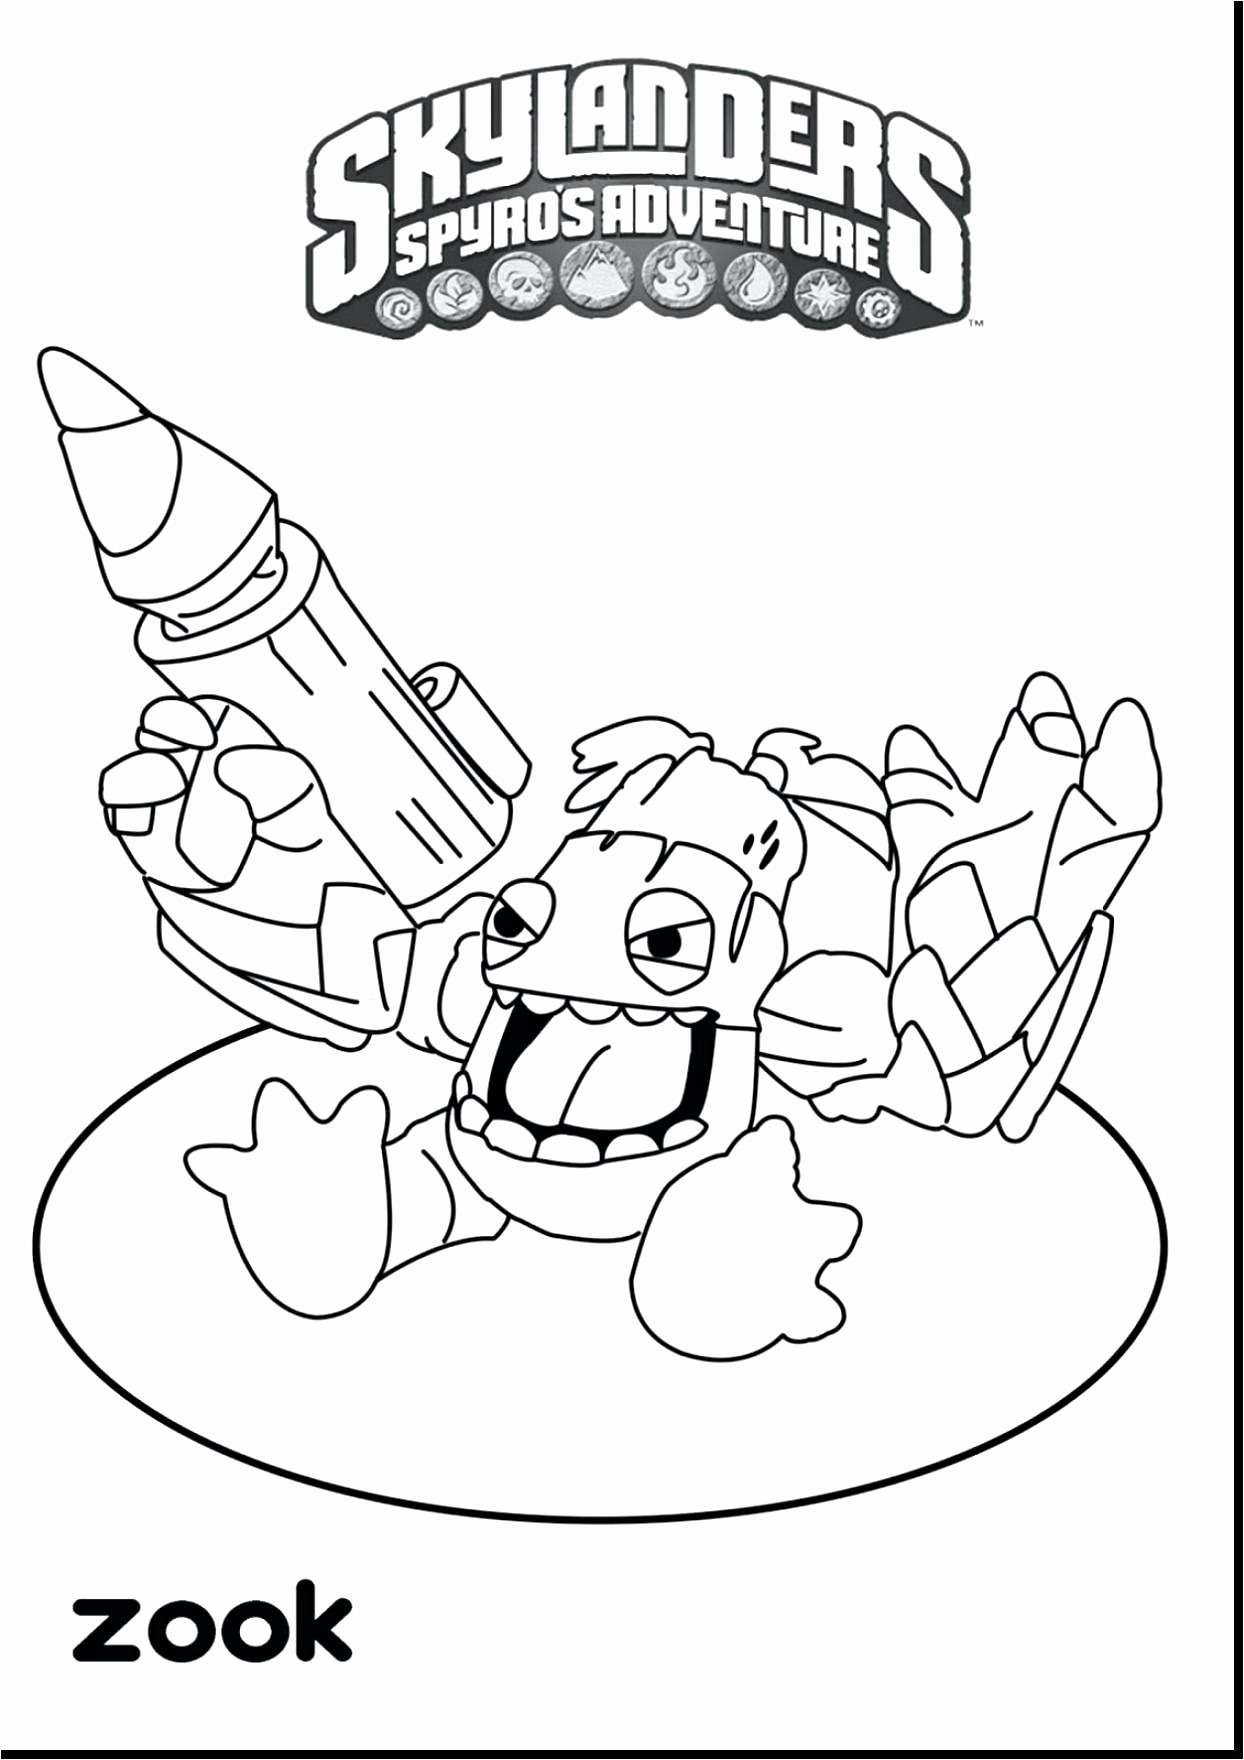 Breast Cancer Coloring Pages - Printable Xmas Coloring Pages Coloring Pages Coloring Pages